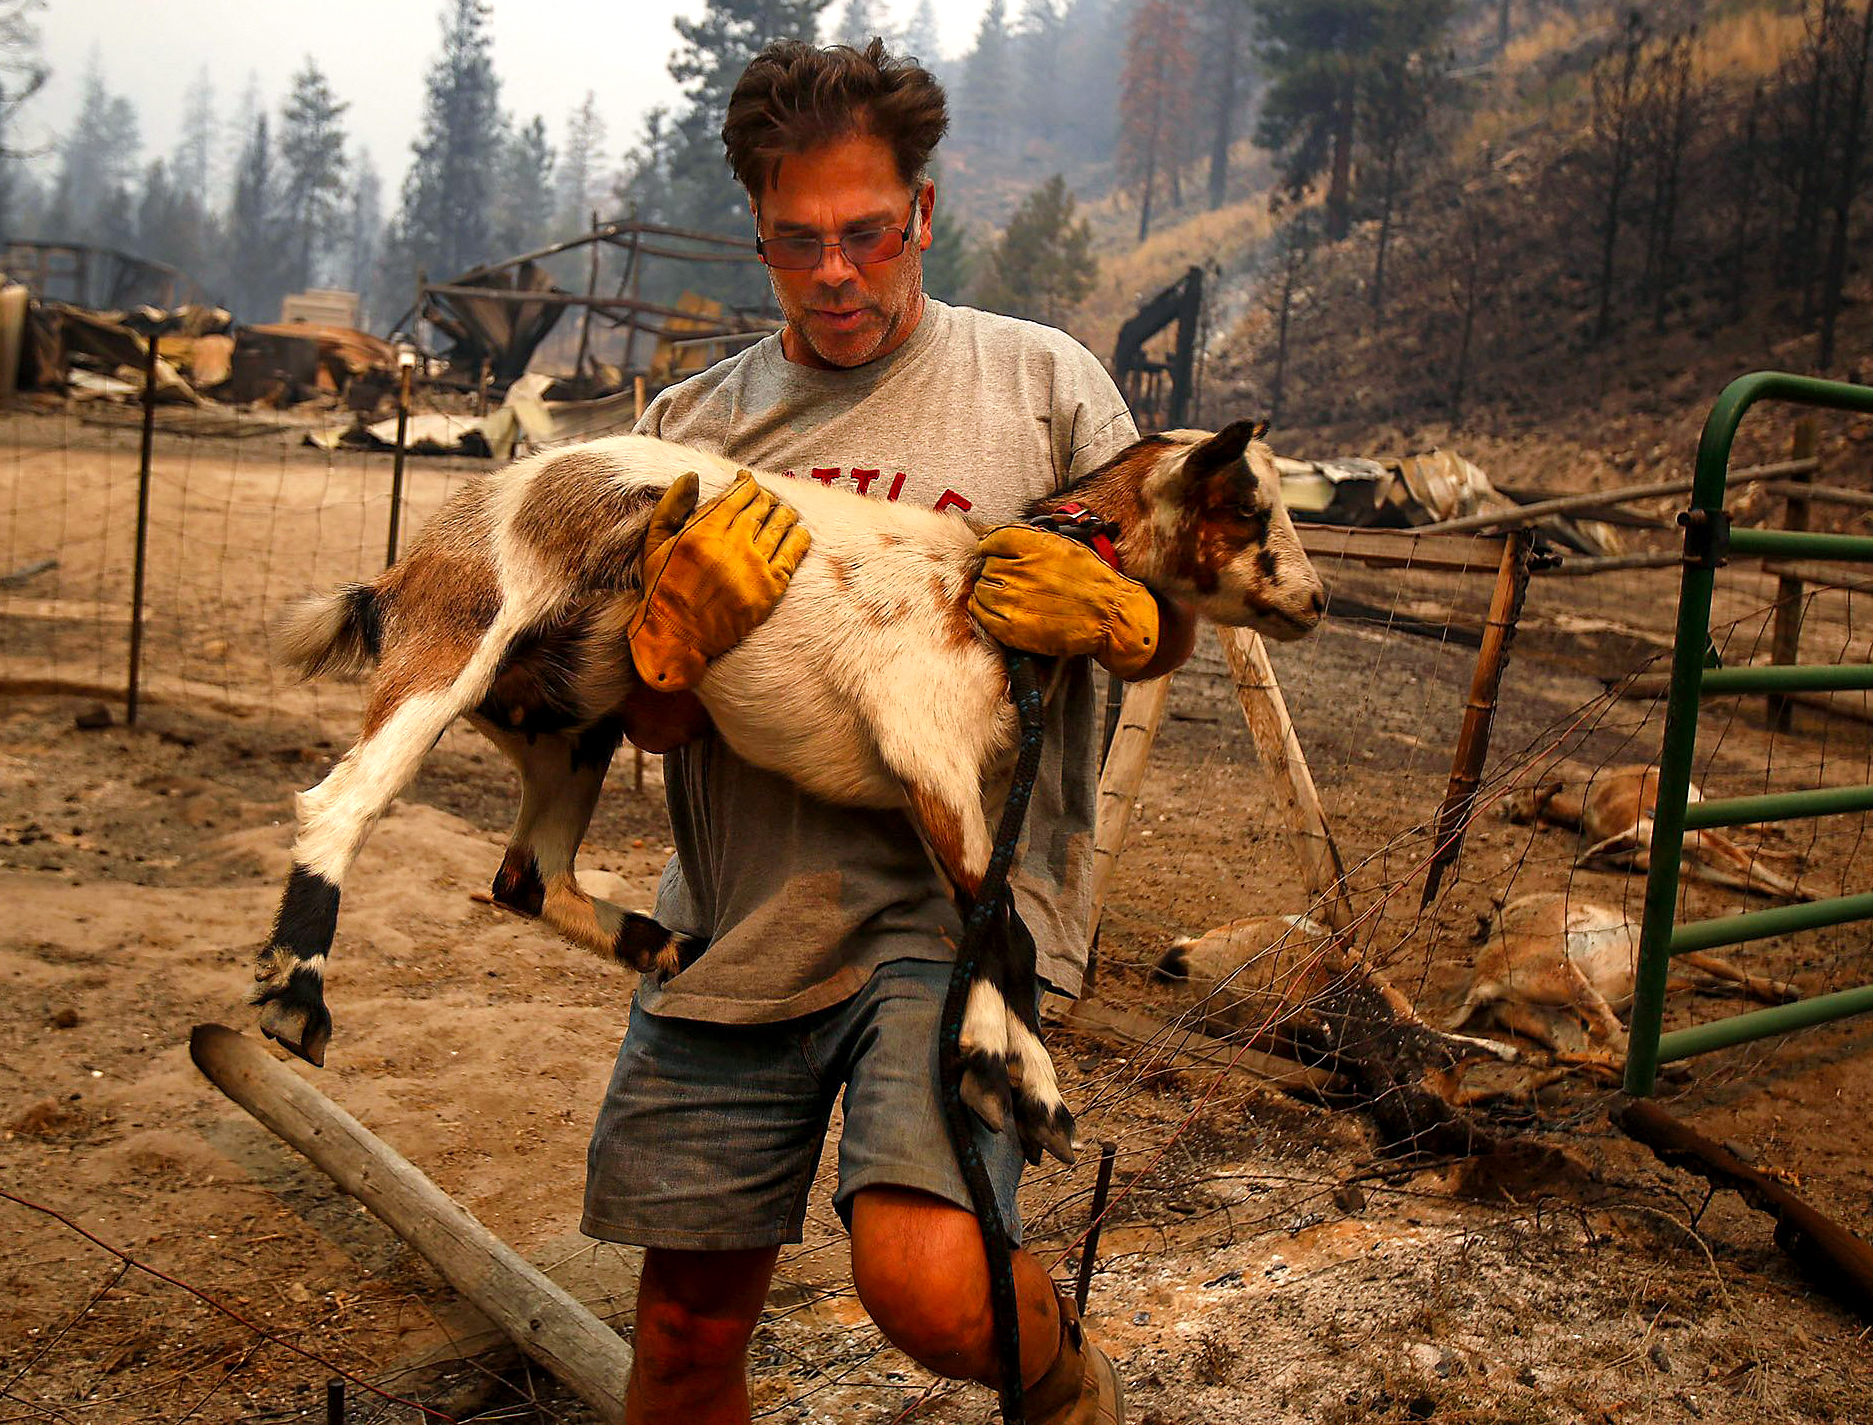 Todd Quinn grabs his only surviving goat from the firestorm that swept through his ranch Friday night, on Saturday, Aug. 15, 2015. Composed of five massive fires, the Okanogan Complex became the second largest wildfire in state history, burning over 304,782 acres. (Sy Bean / The Seattle Times)